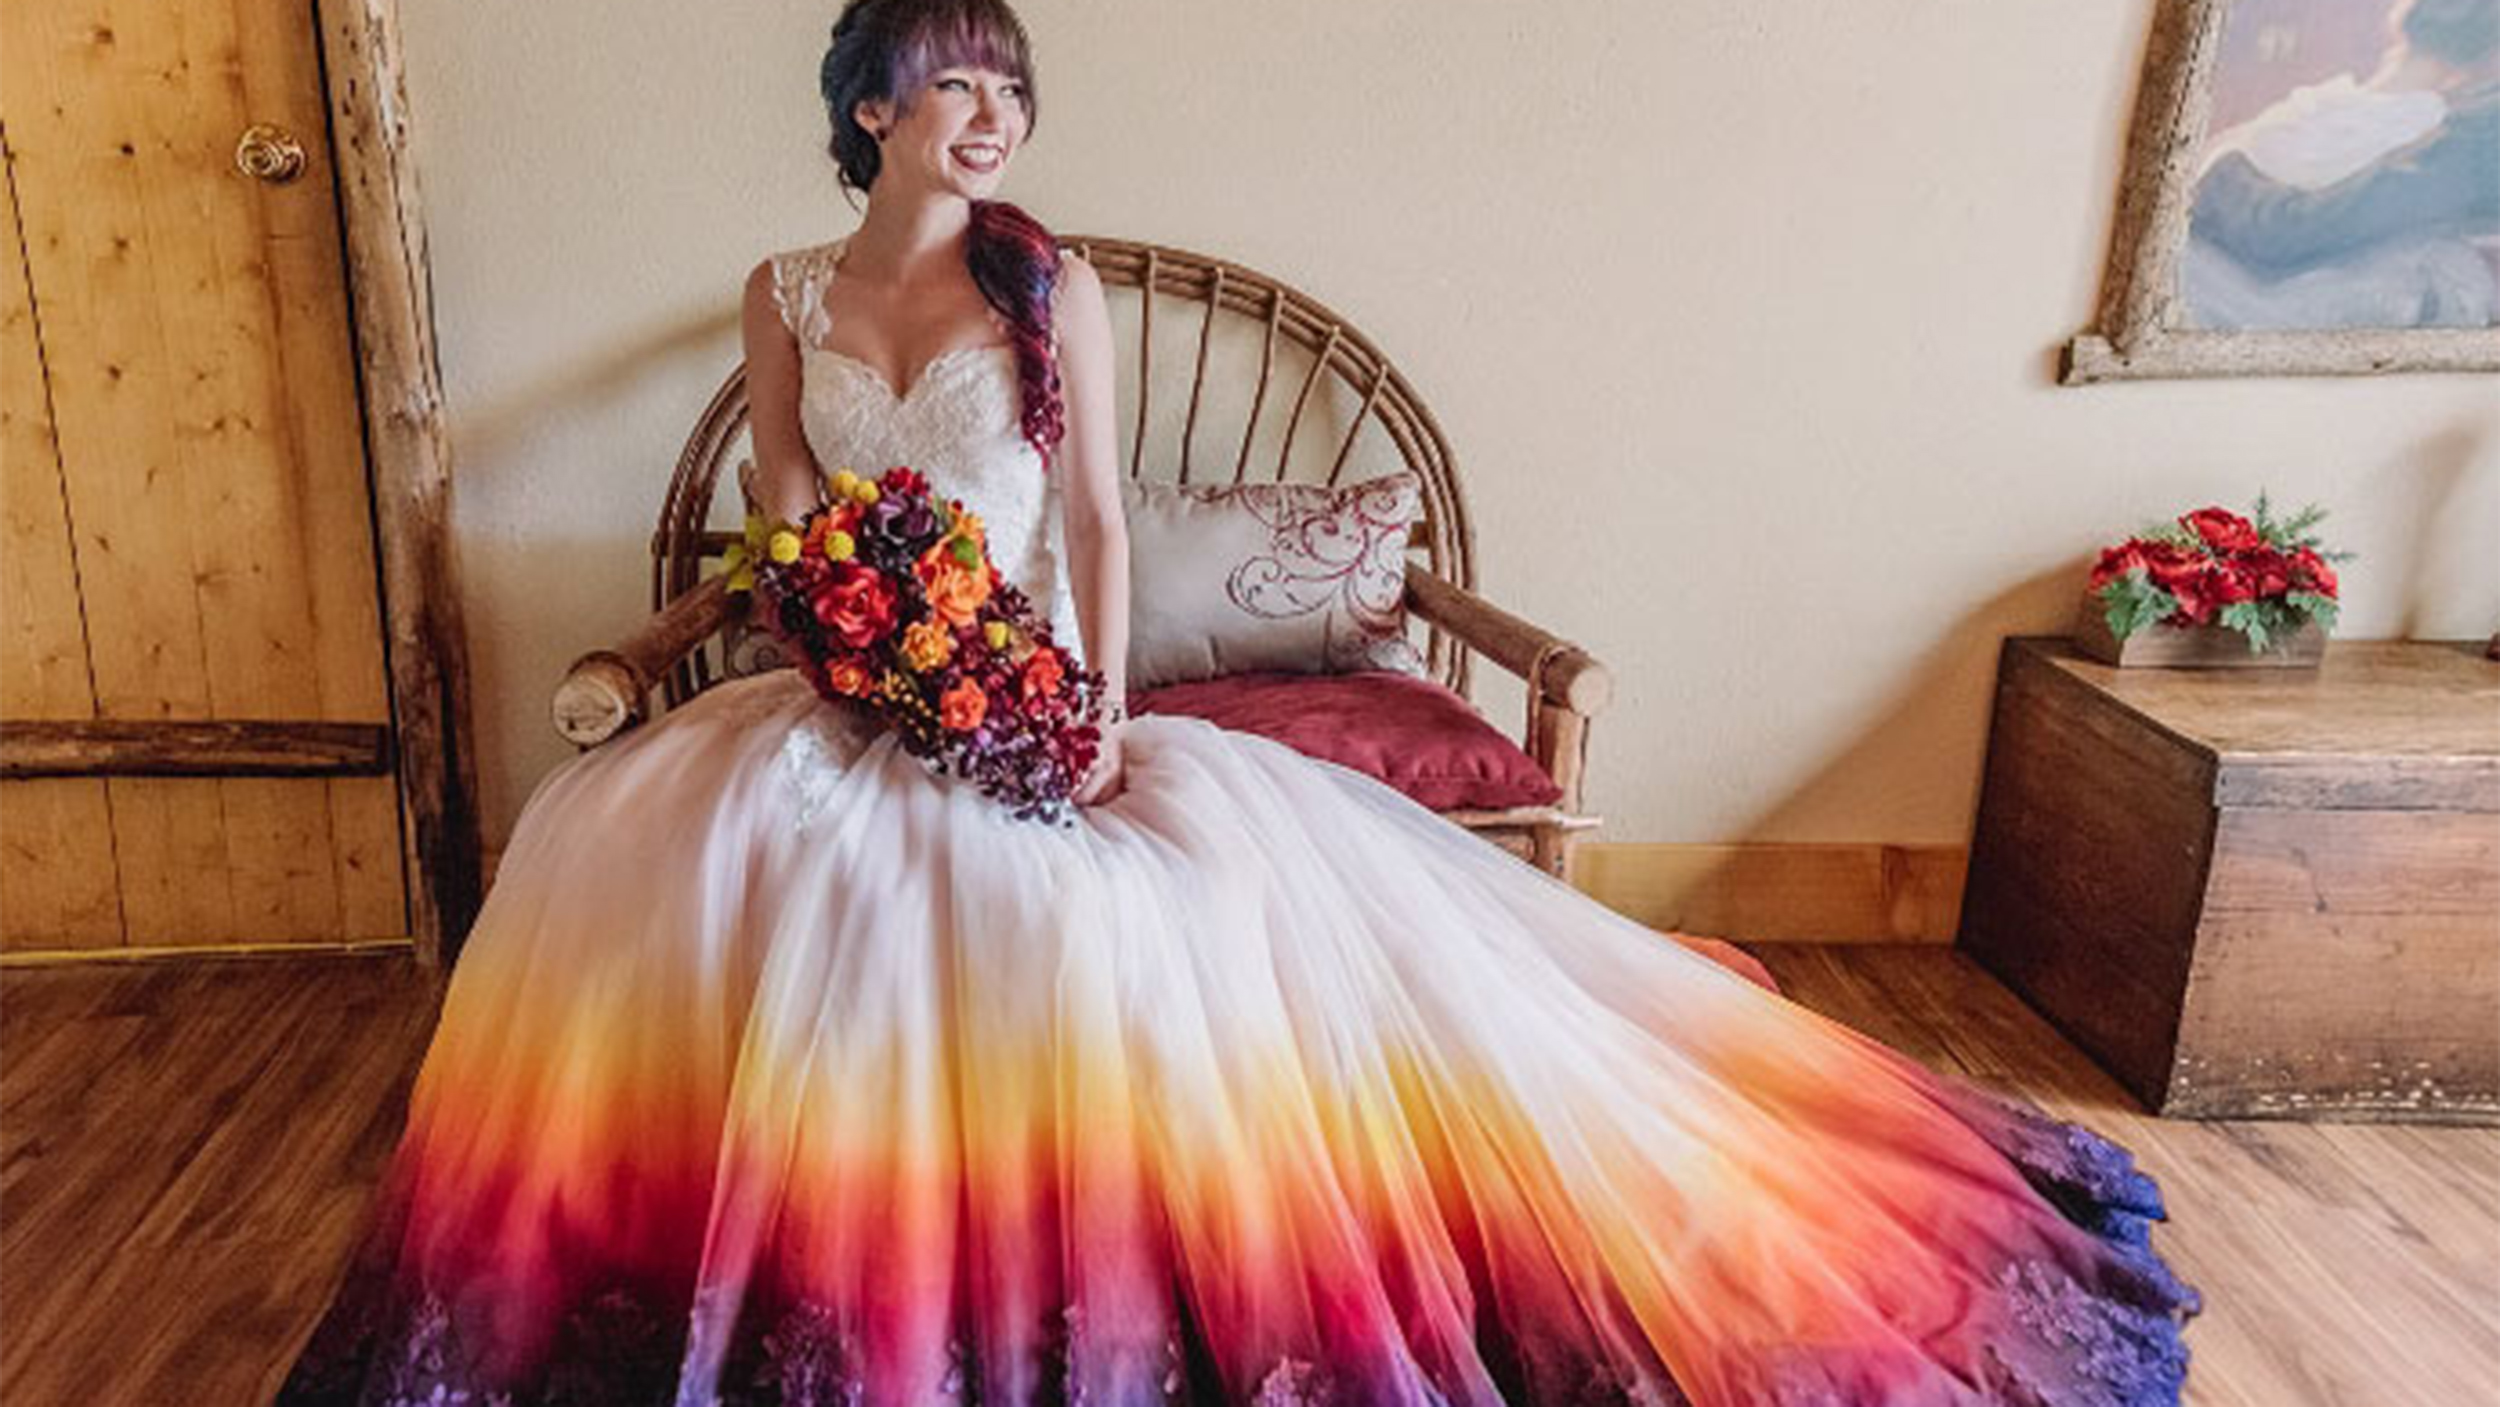 dip dyed colorful wedding dresses are new bridal trend t colorful wedding dresses Dip dyed colorful wedding dresses are the new bridal trend TODAY com